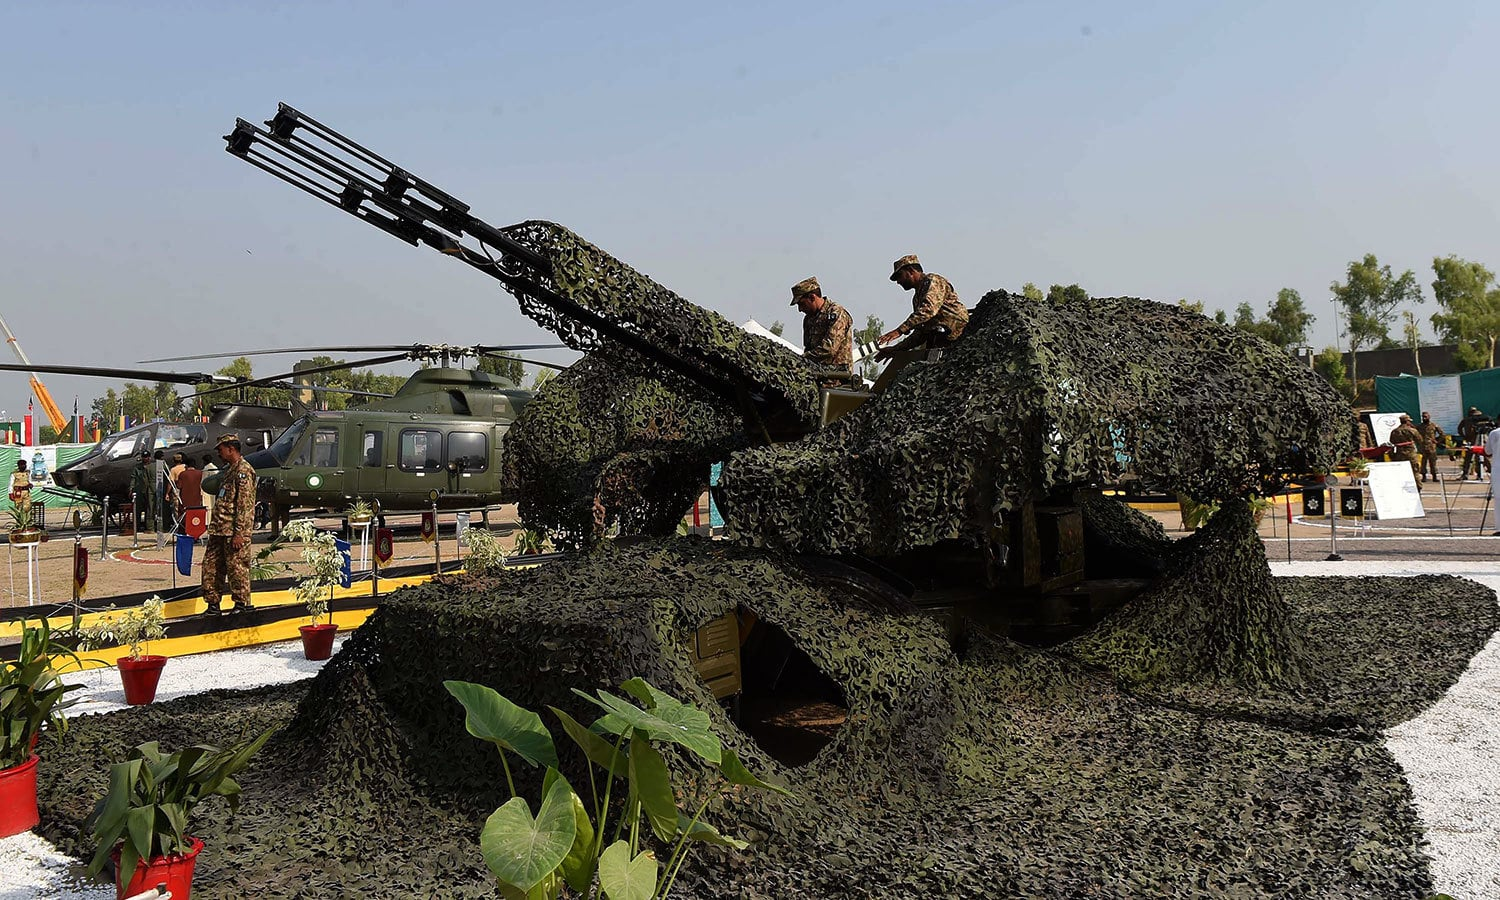 A camouflage anti-aircraft gun on display. — AFP